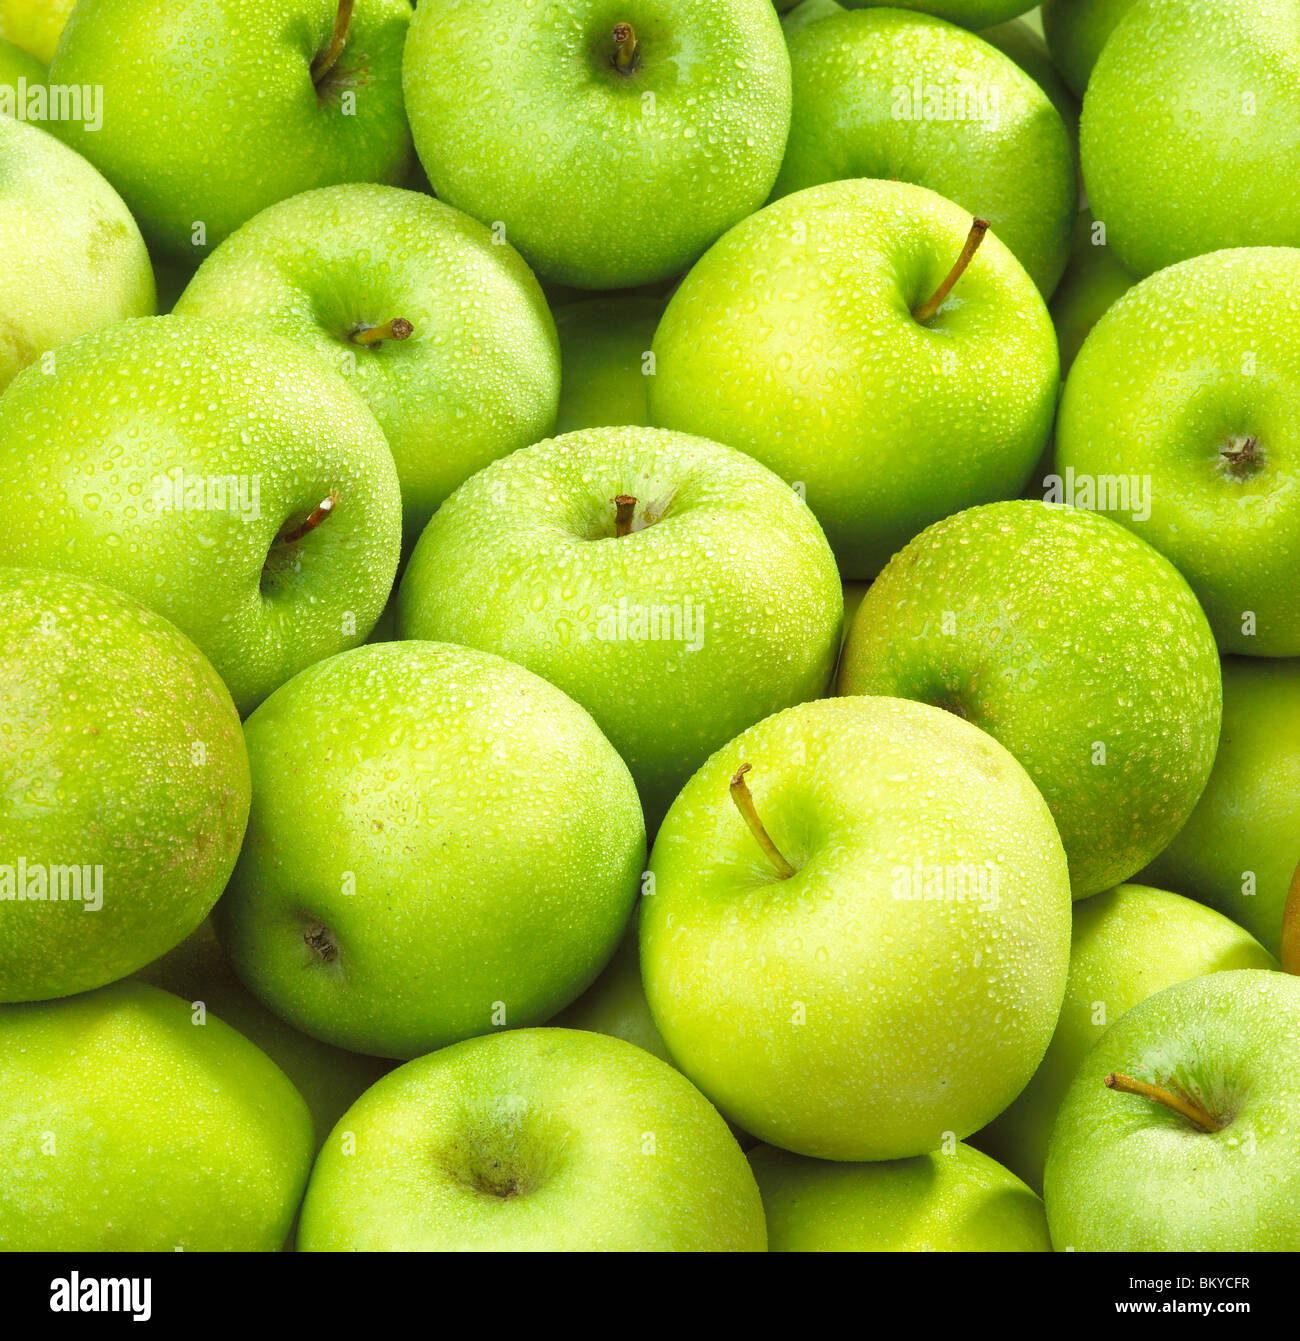 Apples wet - Stock Image